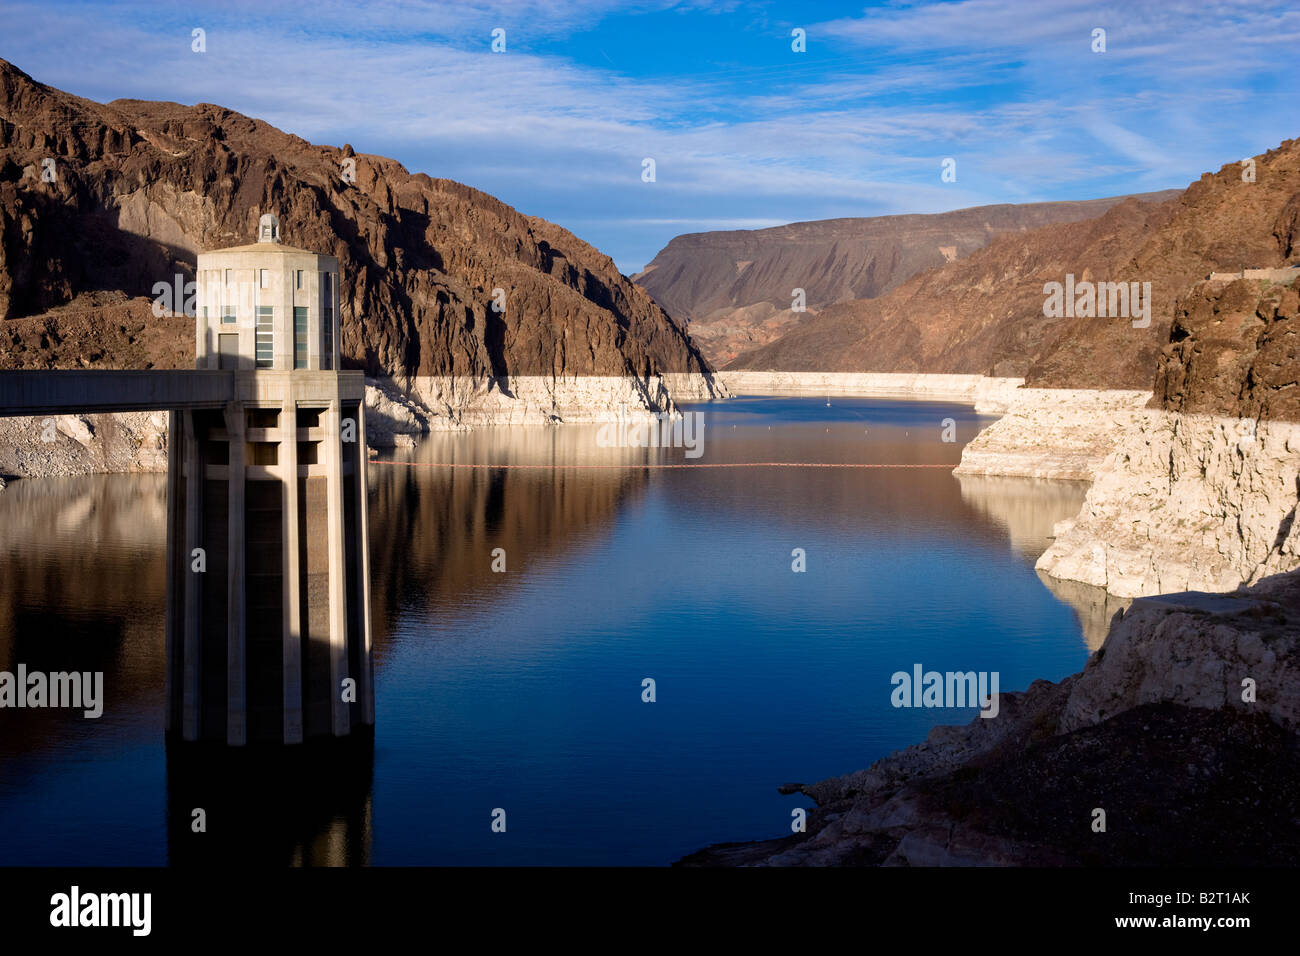 Lake Mead from the Hoover Dam Stock Photo